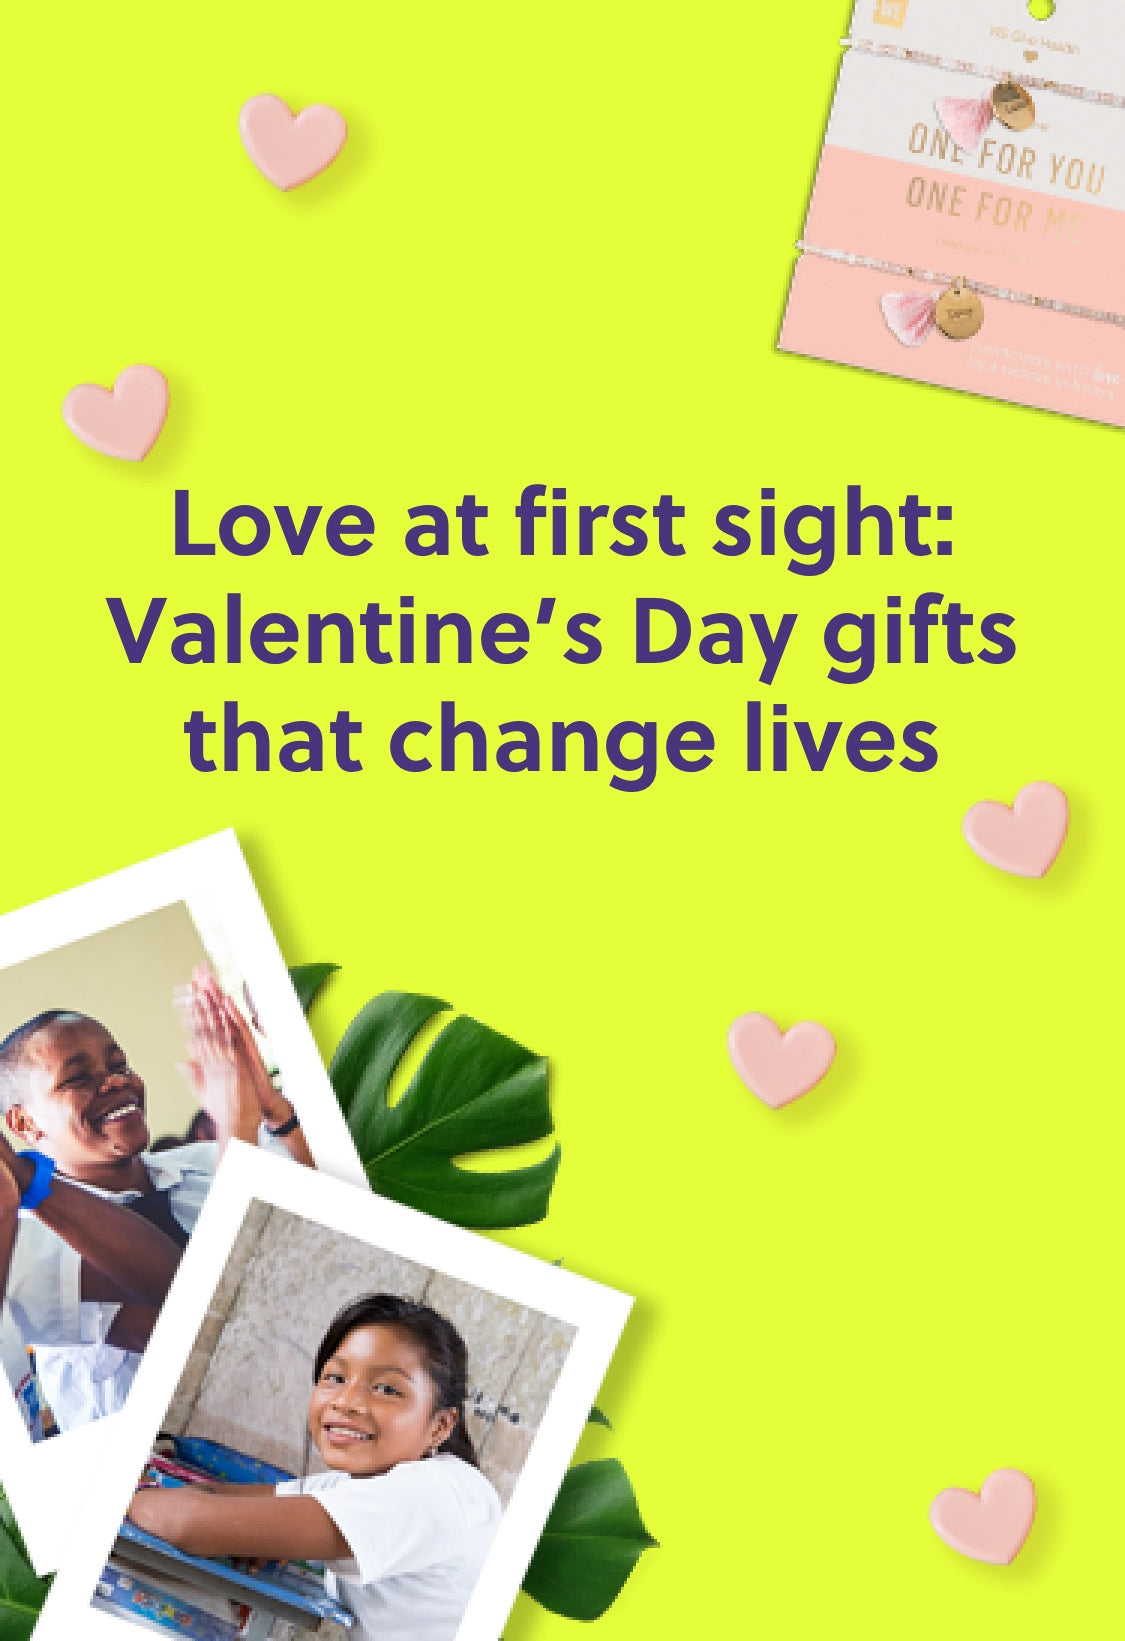 Love at first sight: Valentine's Day gifts that chnge lives